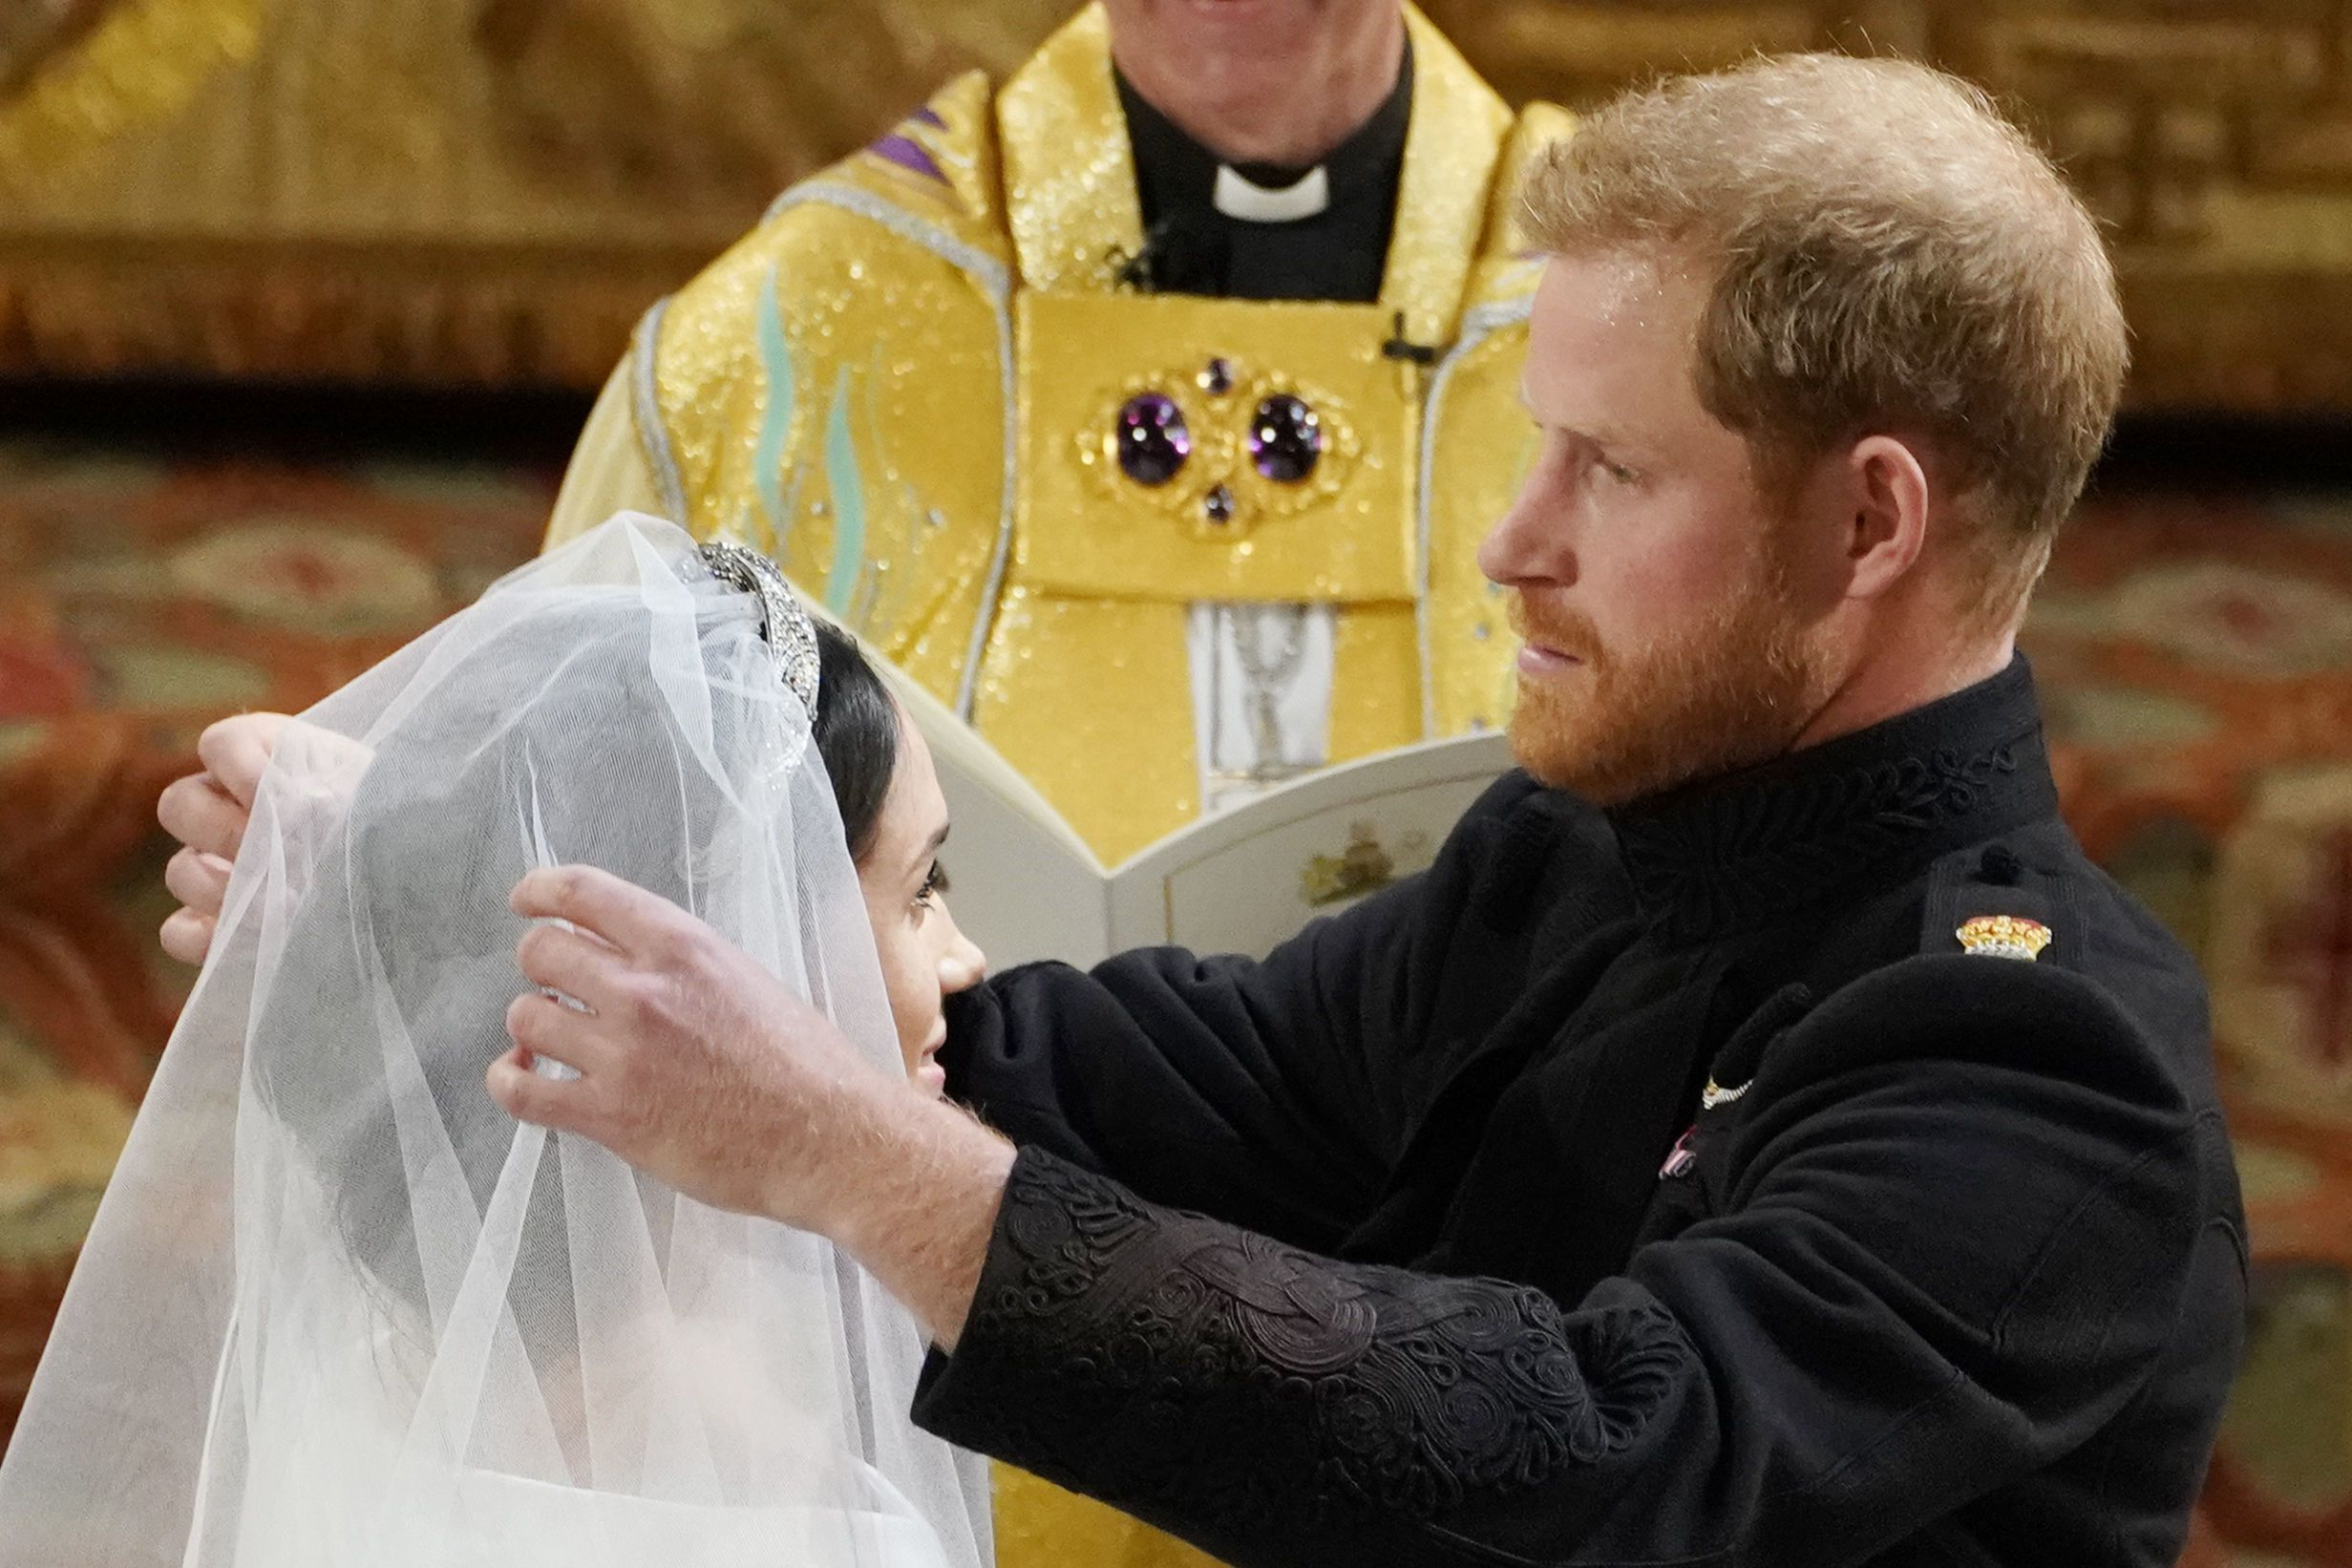 Traditionally the purview of the father of the bride, the newly-minted Duke of Sussex took on the role of removing his bride's veil... and fumbled it just a little . The moment served as an endearing reminder that as carefully choreographed as the royal wedding might have been, in the end it was all about the love between one real couple.